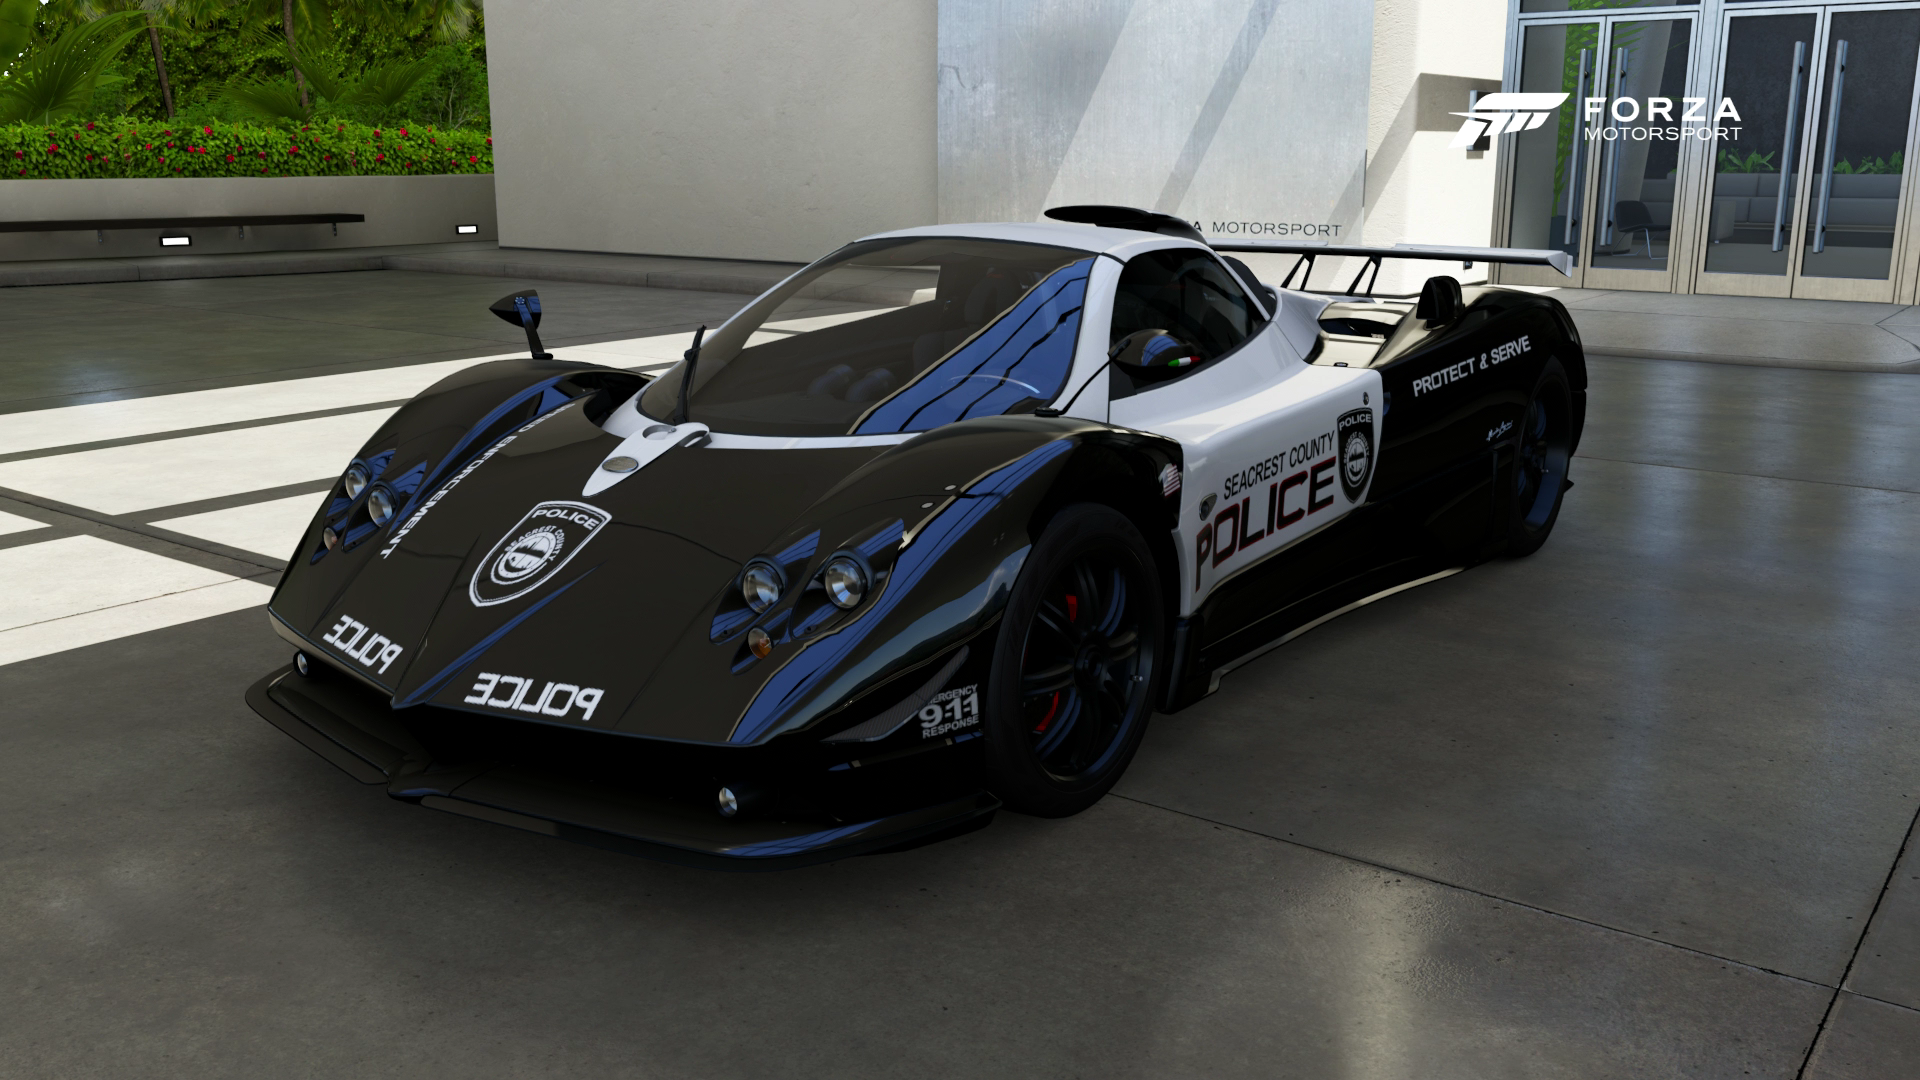 Scpd 2009 pagani zonda cinque roadster front by xboxgamer969 scpd 2009 pagani zonda cinque roadster front by xboxgamer969 vanachro Image collections